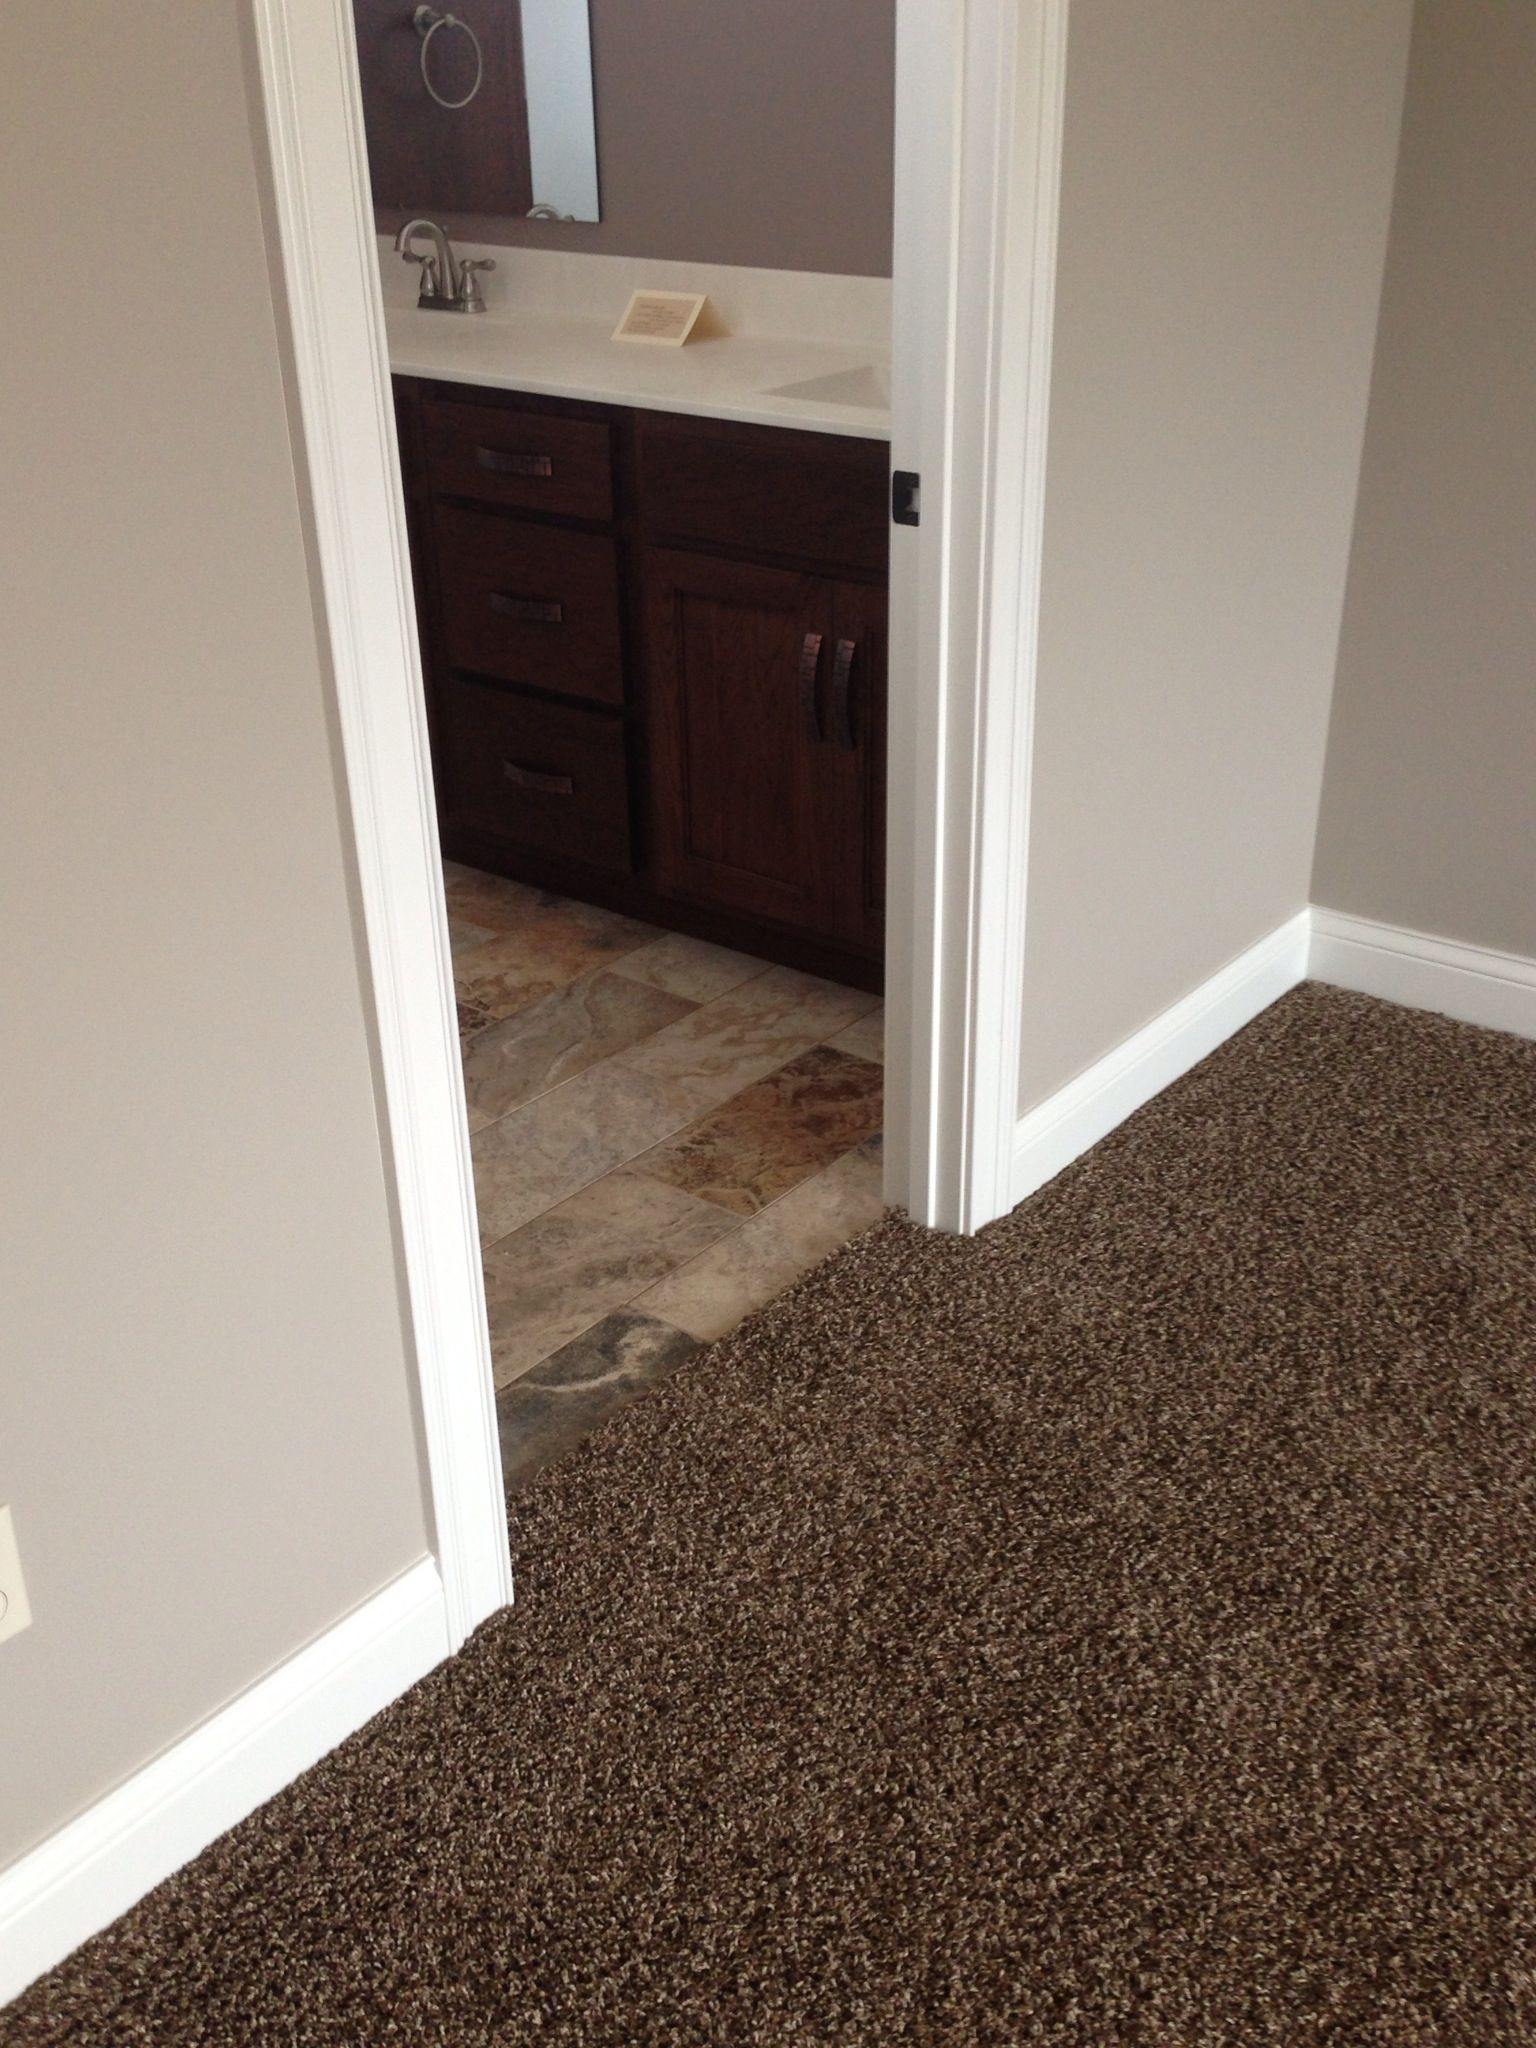 like carpet (looks much darker in this pic) and tile colors with